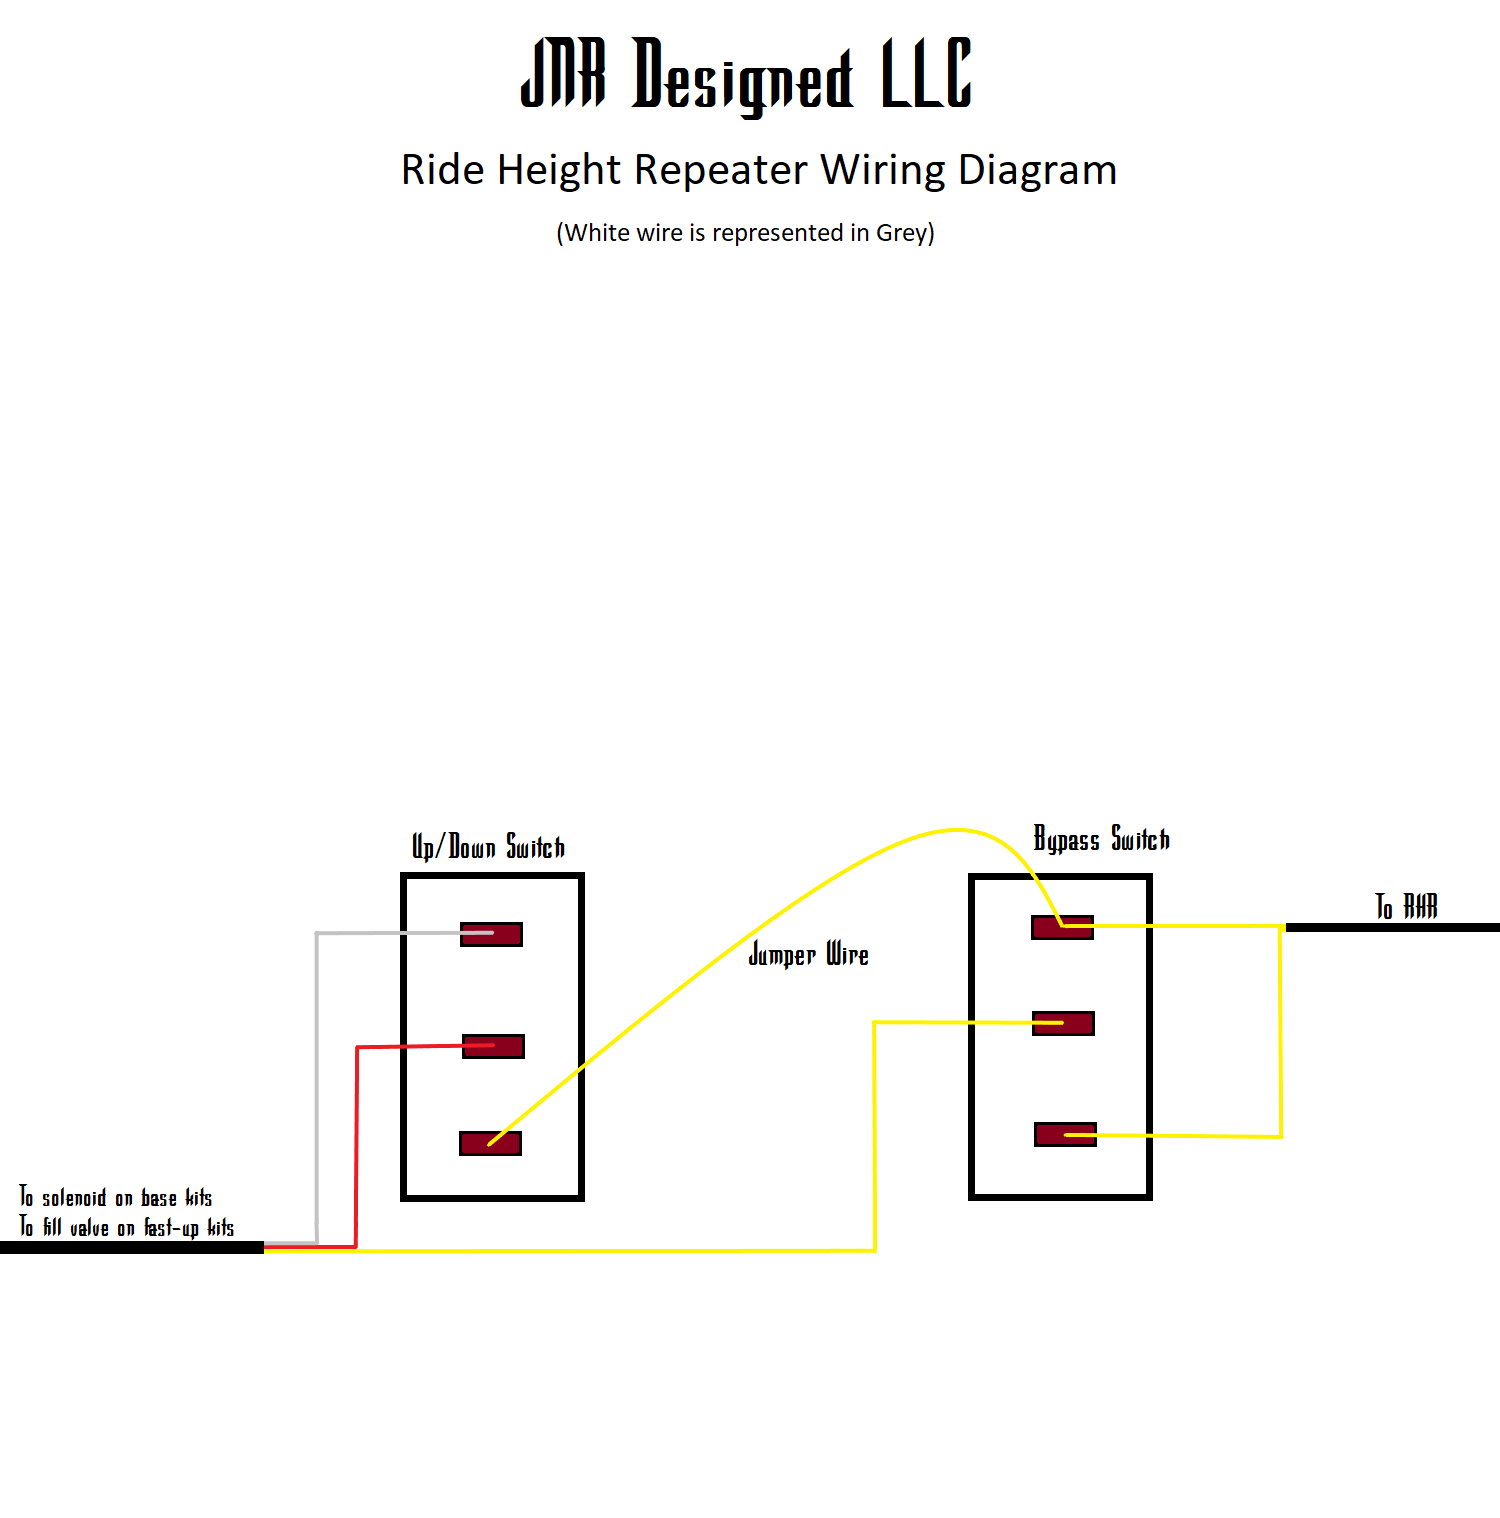 hight resolution of jnr designed standard ride height repeater wiring diagram